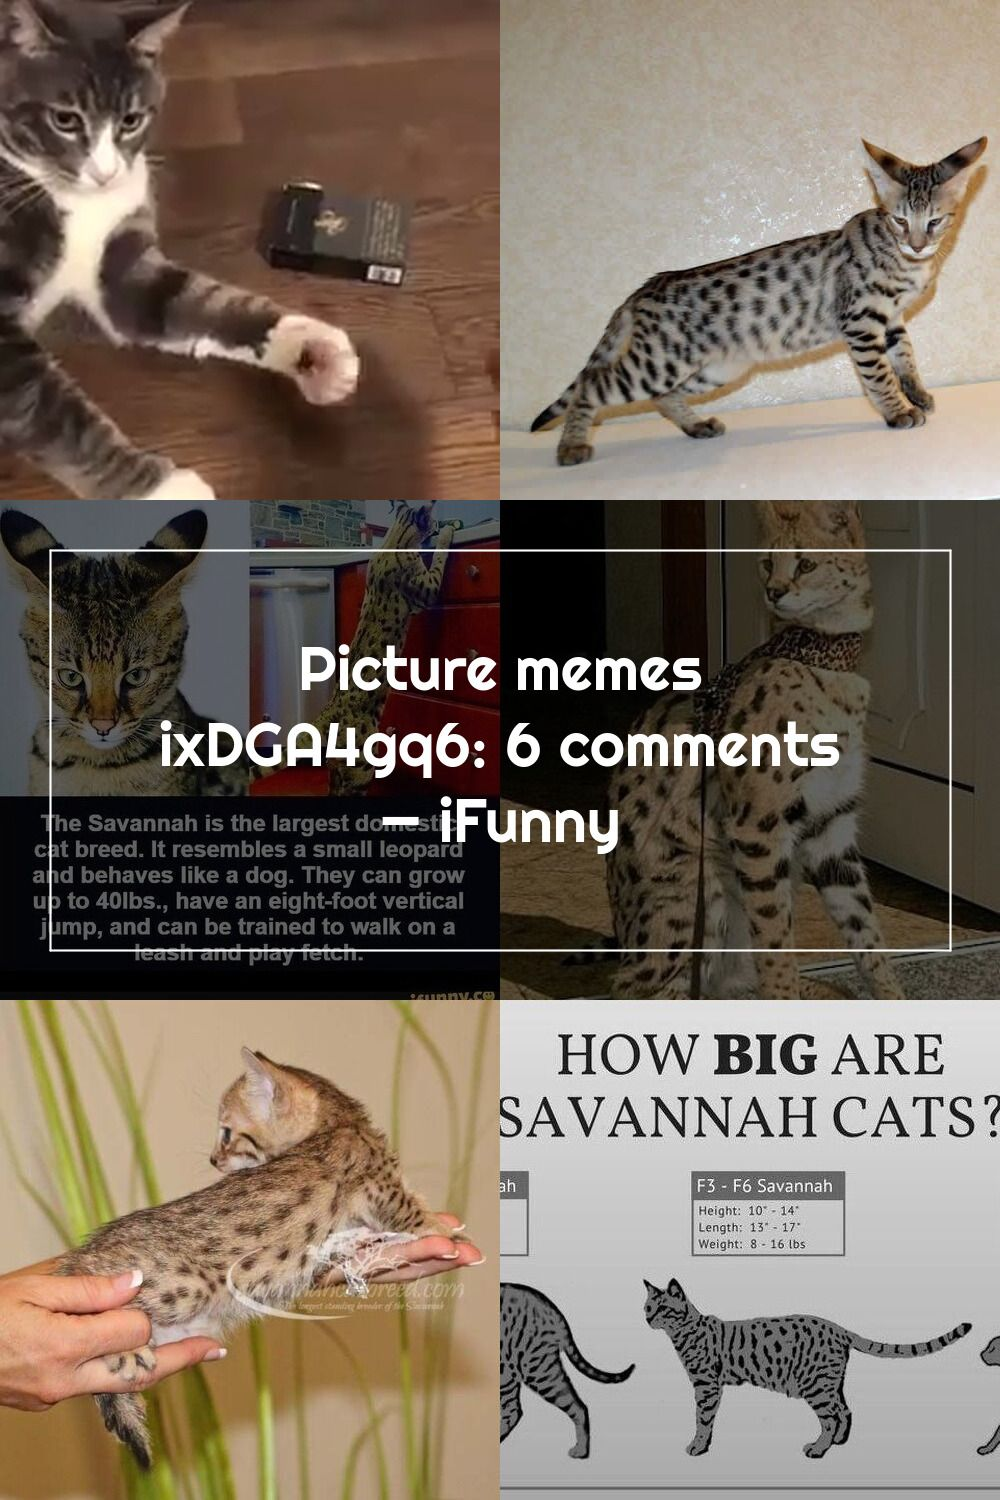 Picture Memes Ixdga4gq6 6 Comments Ifunny In 2020 Savannah Cat Cat Breeds Cats